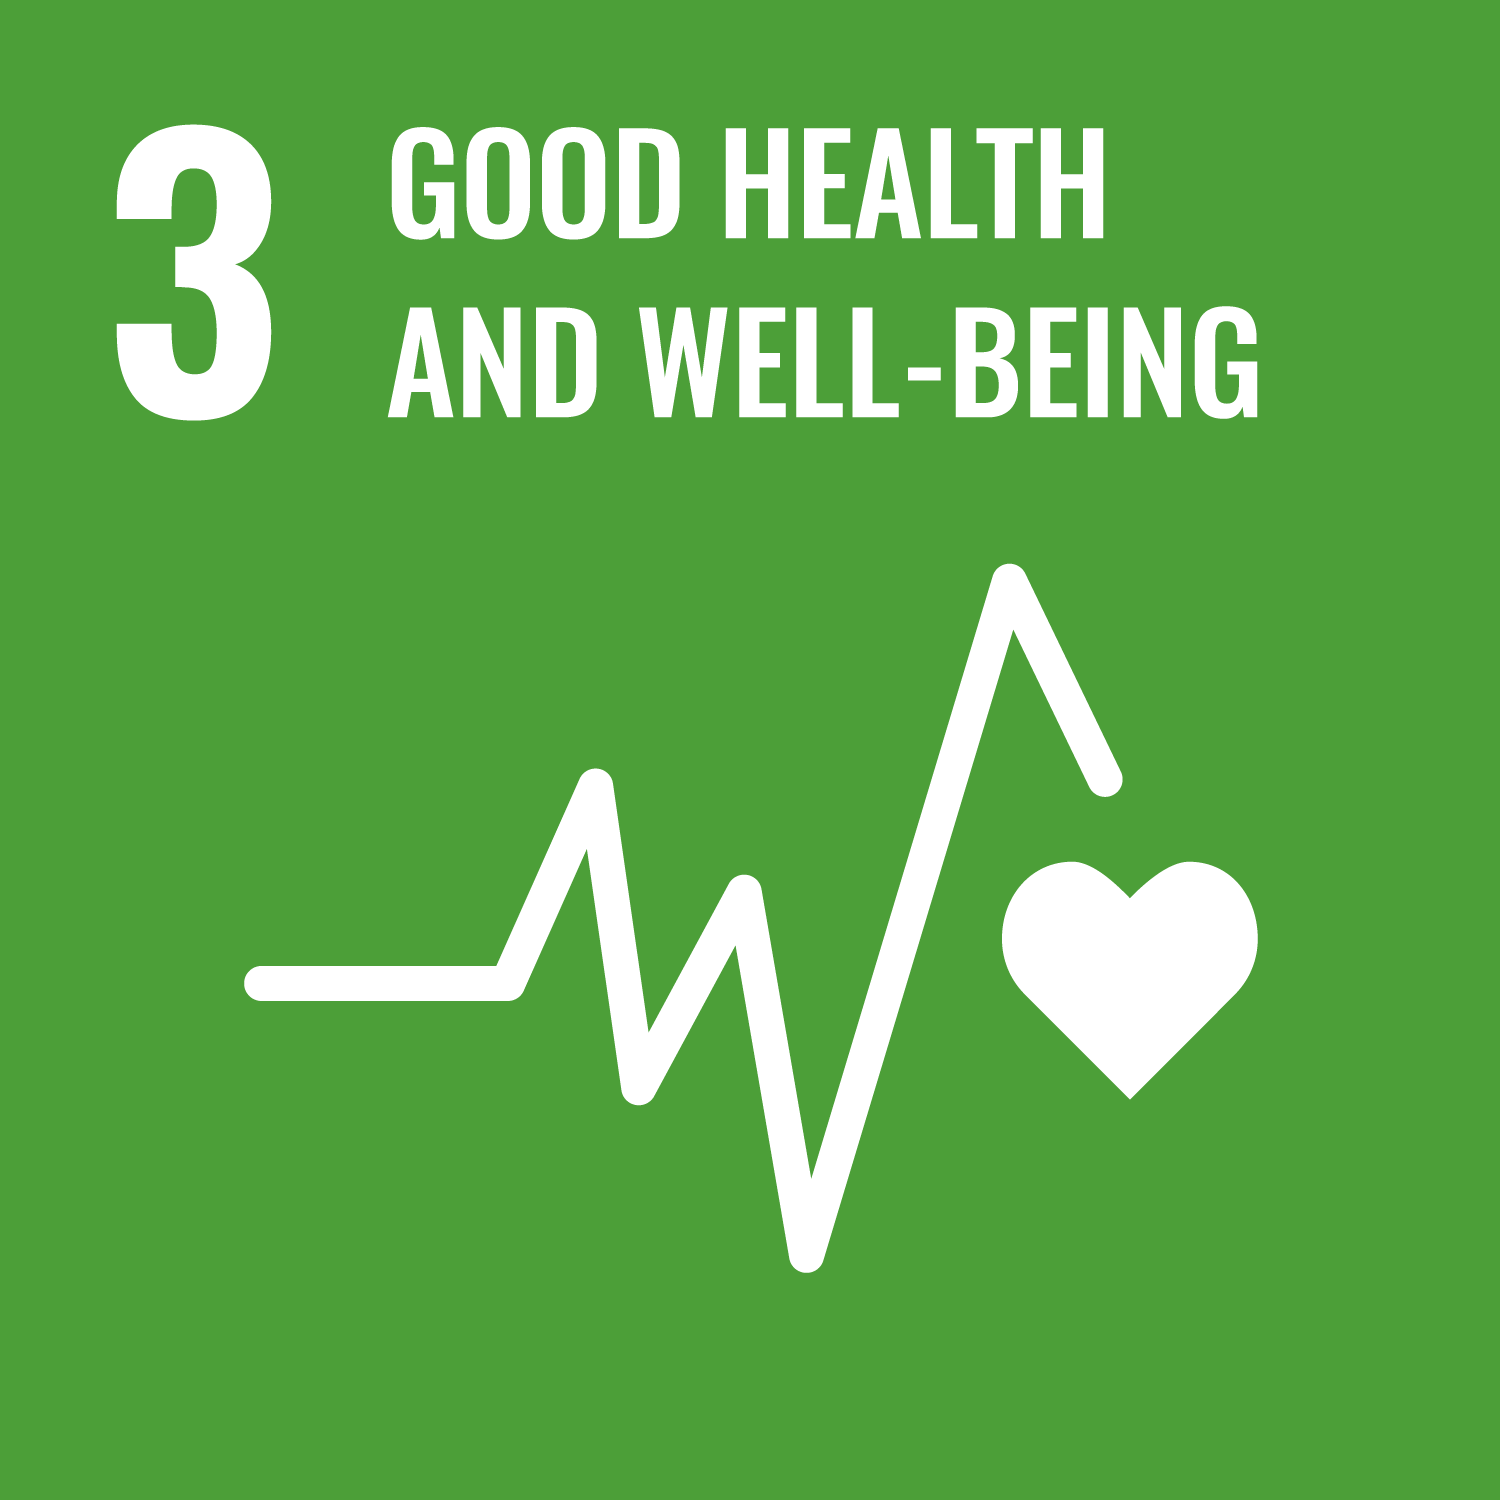 03 Good Health and Well-Being